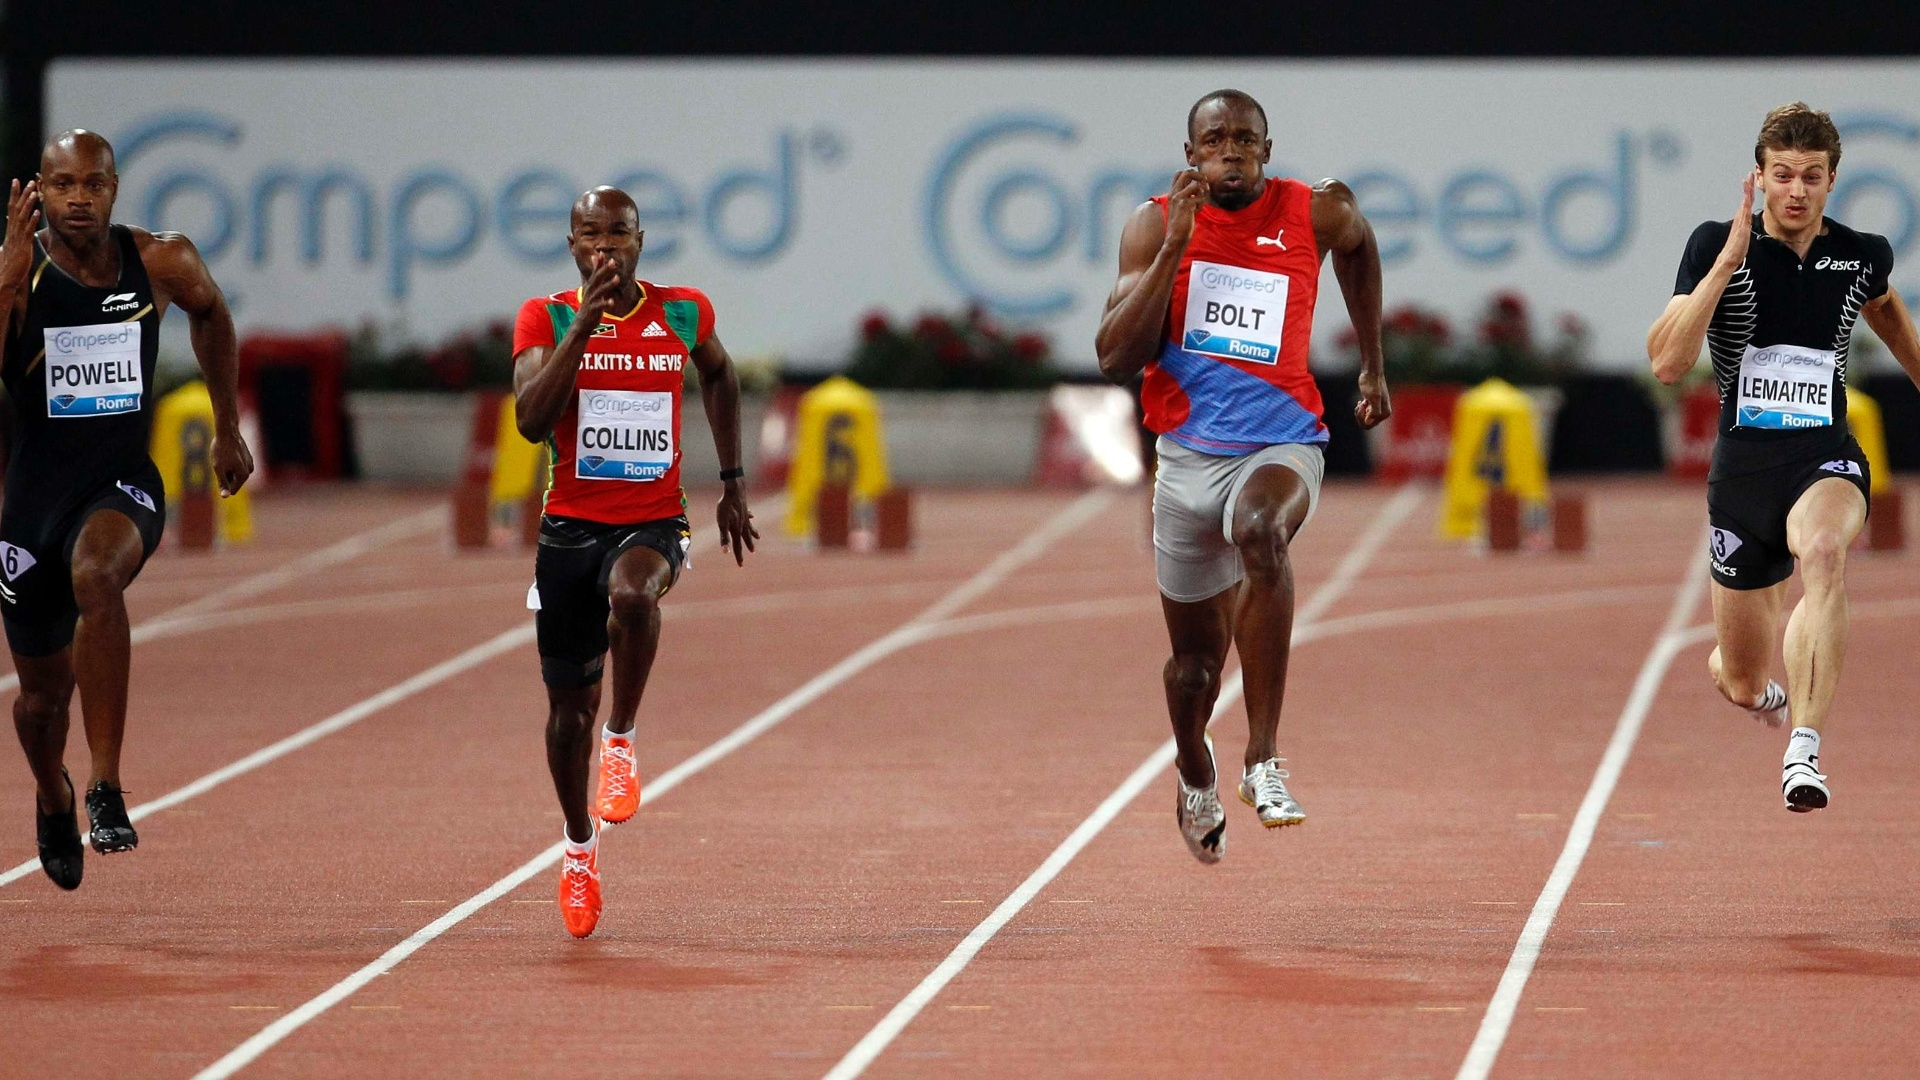 Para vencer os 100 m, Bolt deixou para trs o tambm jamaicano Asafa Powell (e) e o francs Christophe Lemaitre (d) (31/05/2012)